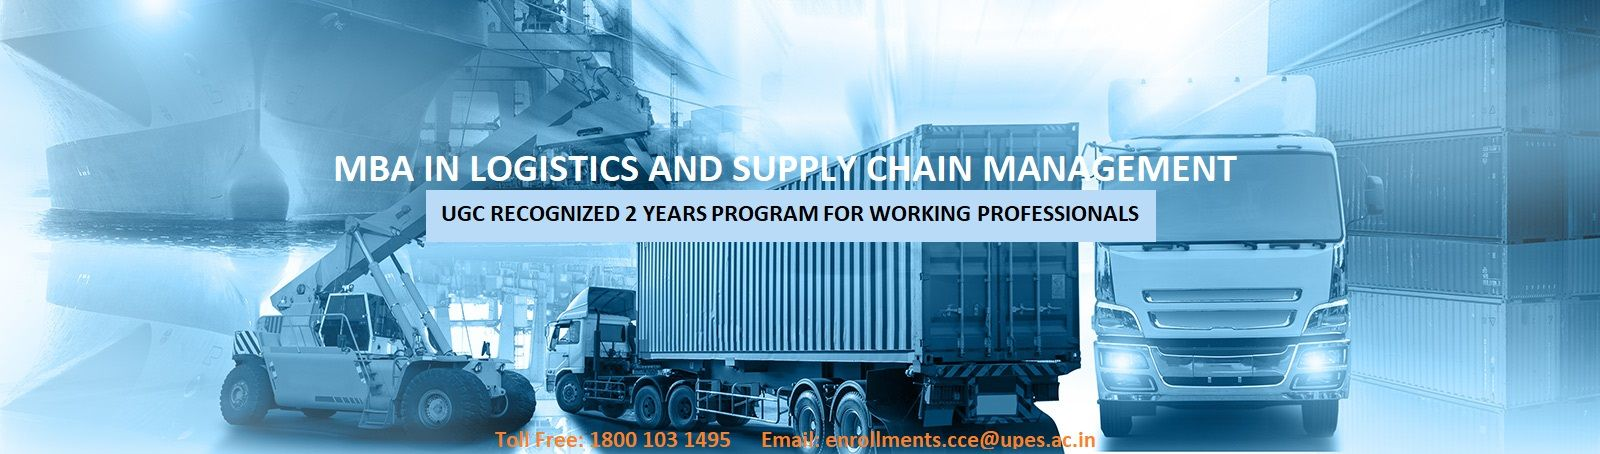 Distance MBA in Logistic and Supply Chain Management Program